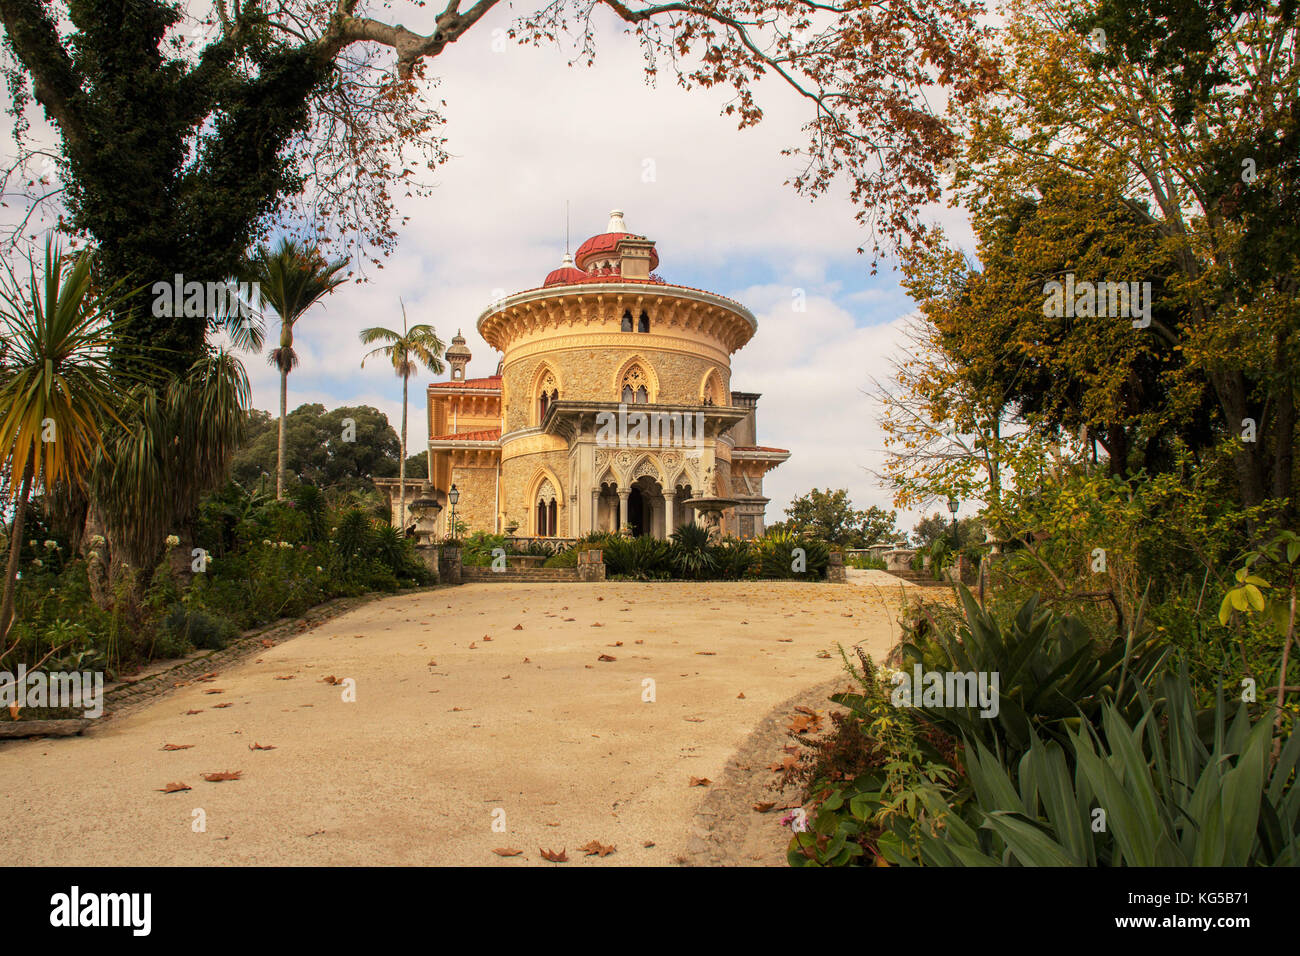 The Palace of Monserratte Sintra Portugal - Stock Image